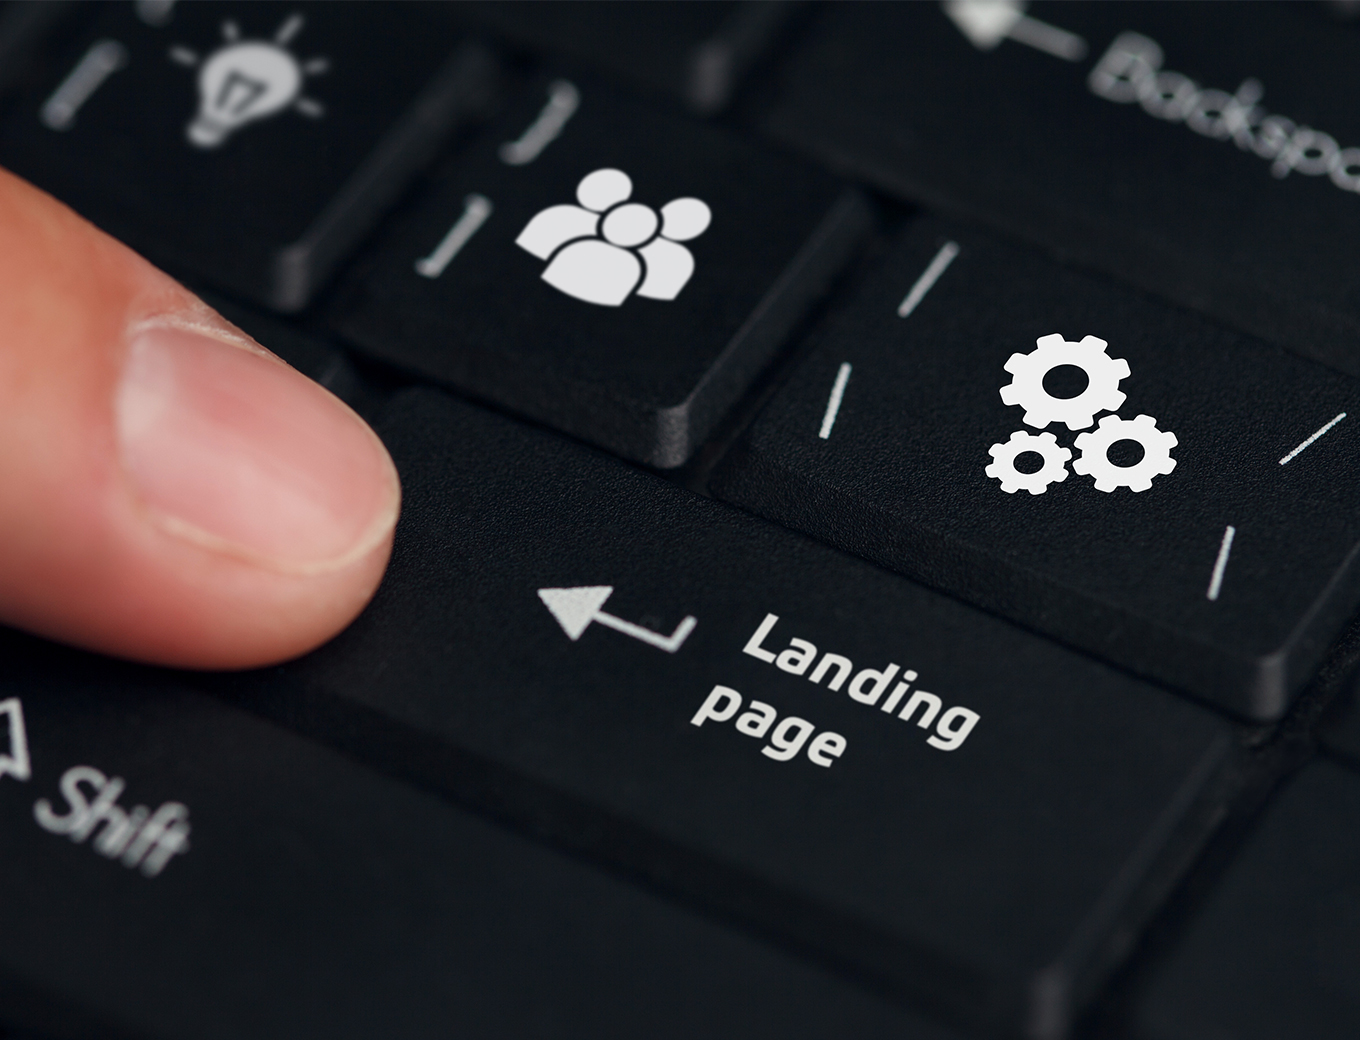 landing page button on keyboard